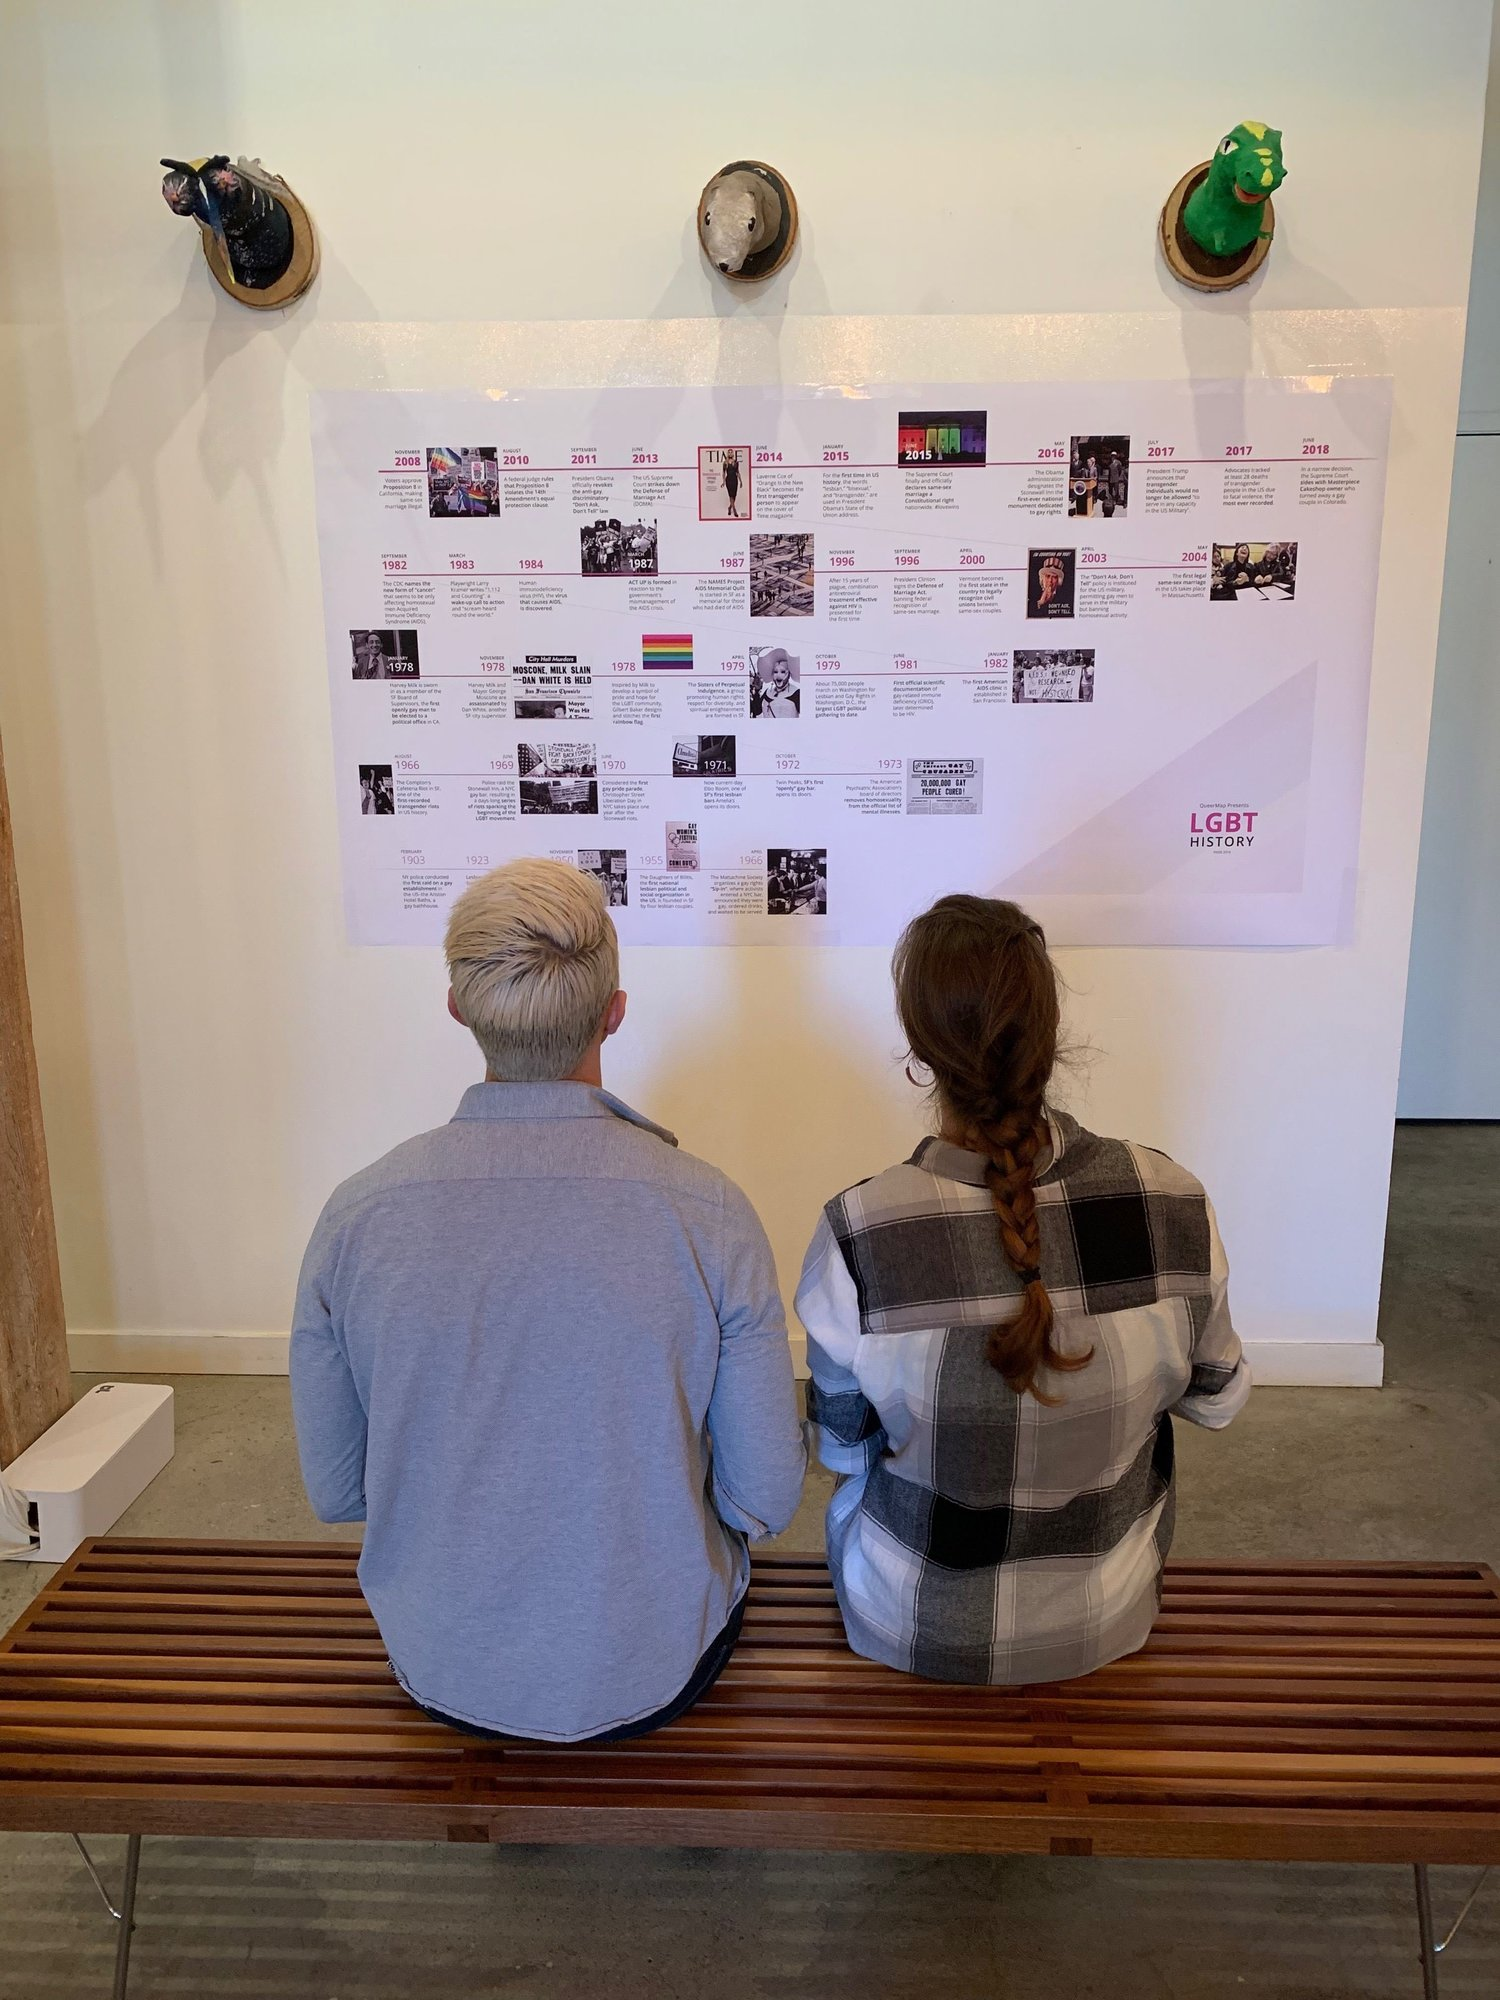 A colleague and I sit and view the LGBT timeline.